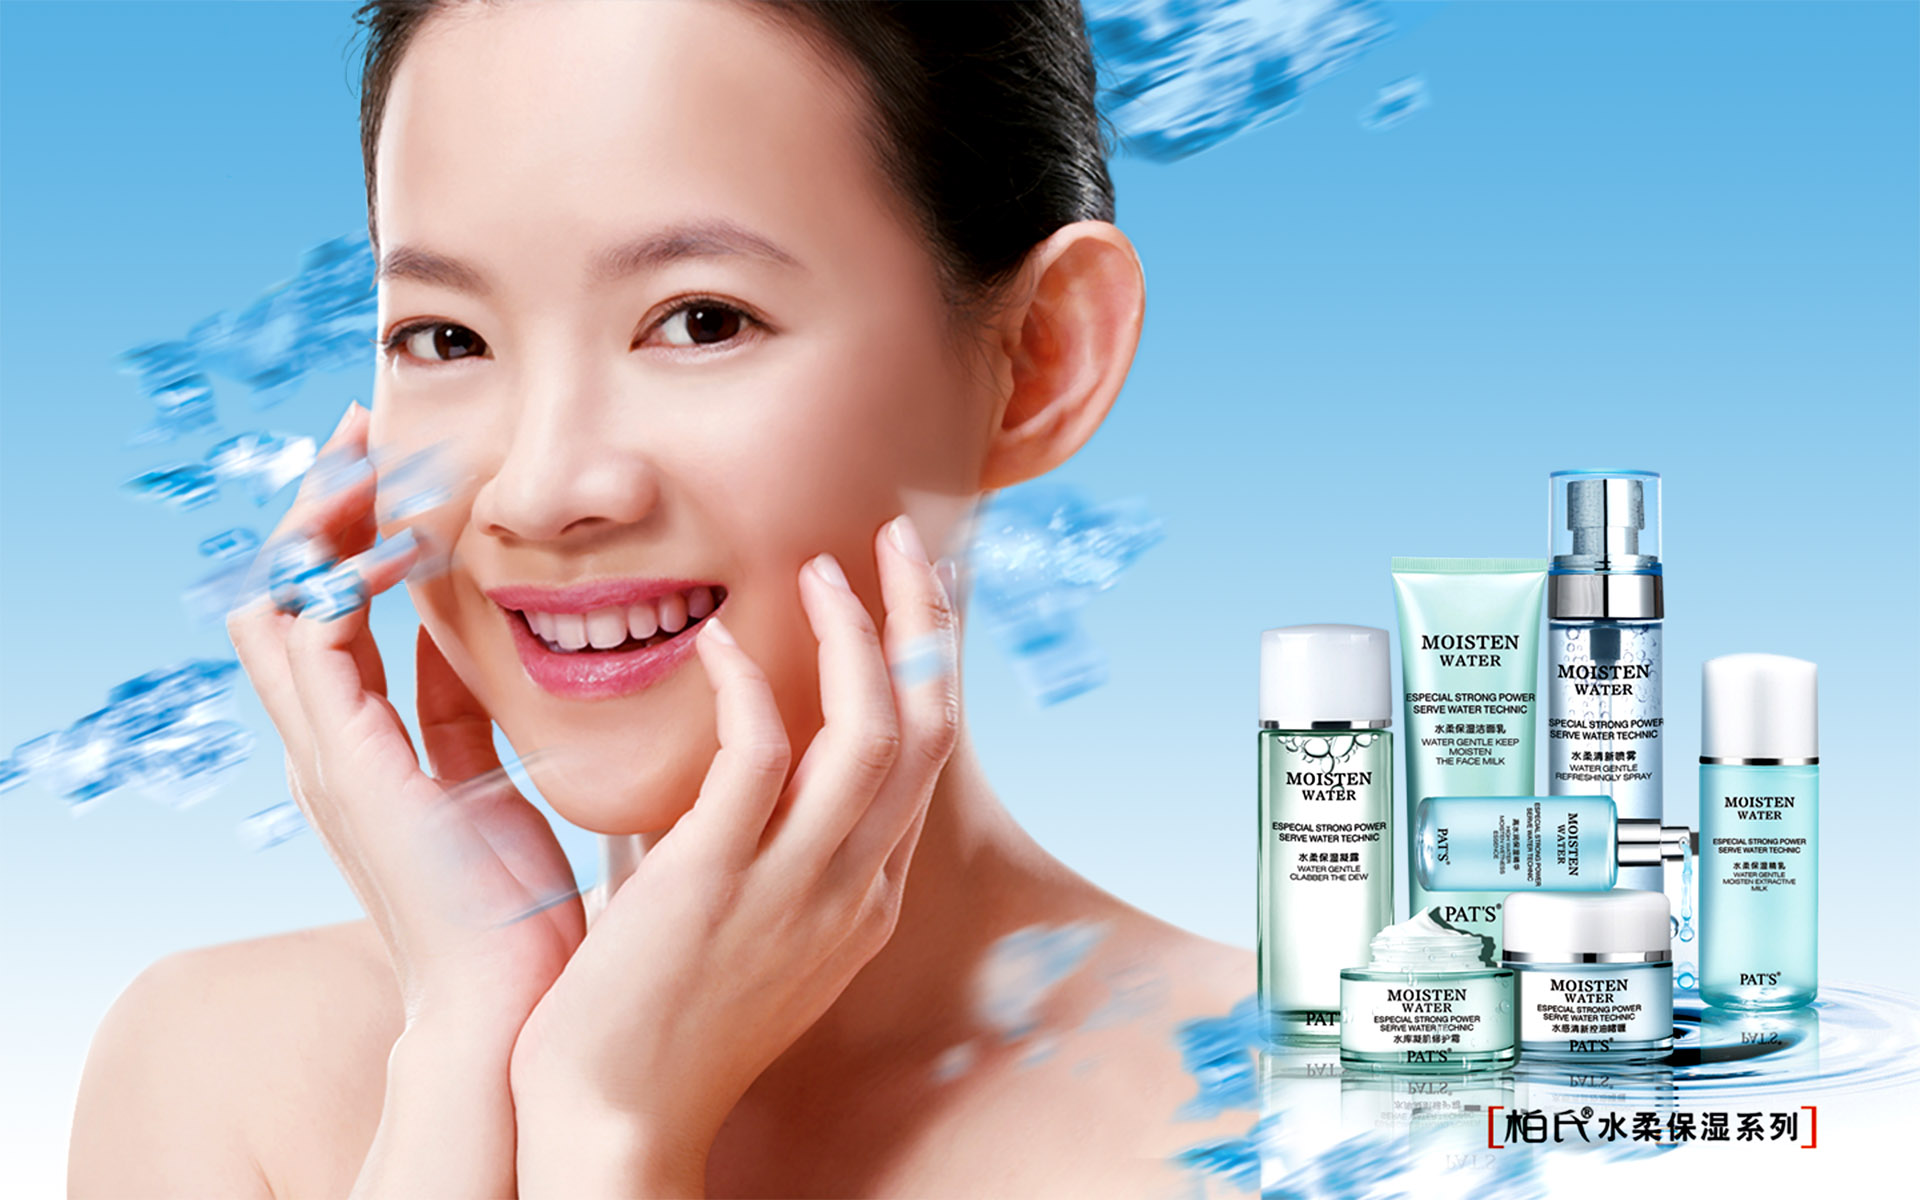 HD cosmetics ads wallpaper 2706